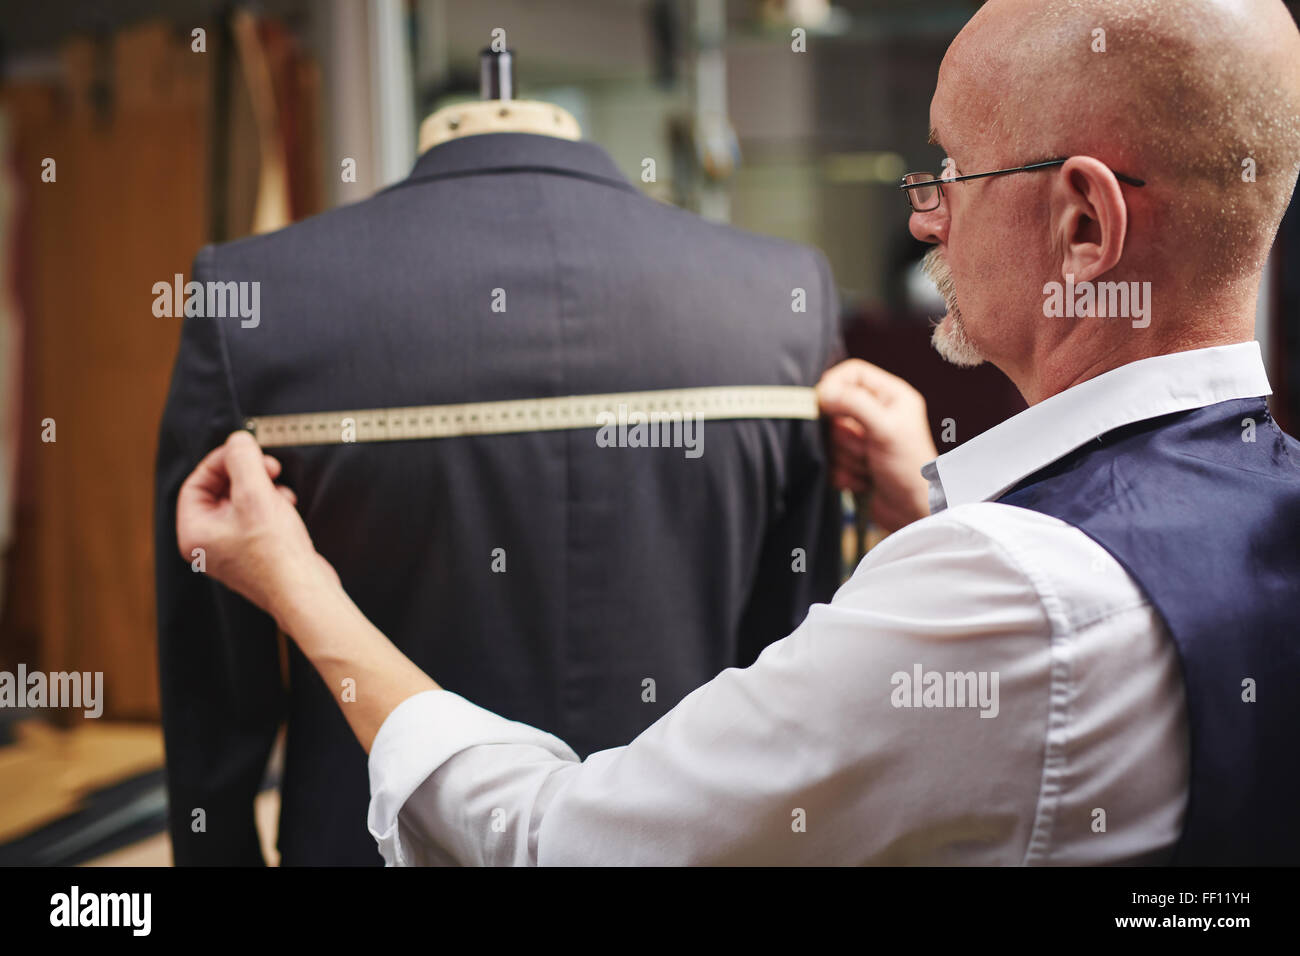 Mature tailor measuring back of jacket at work - Stock Image